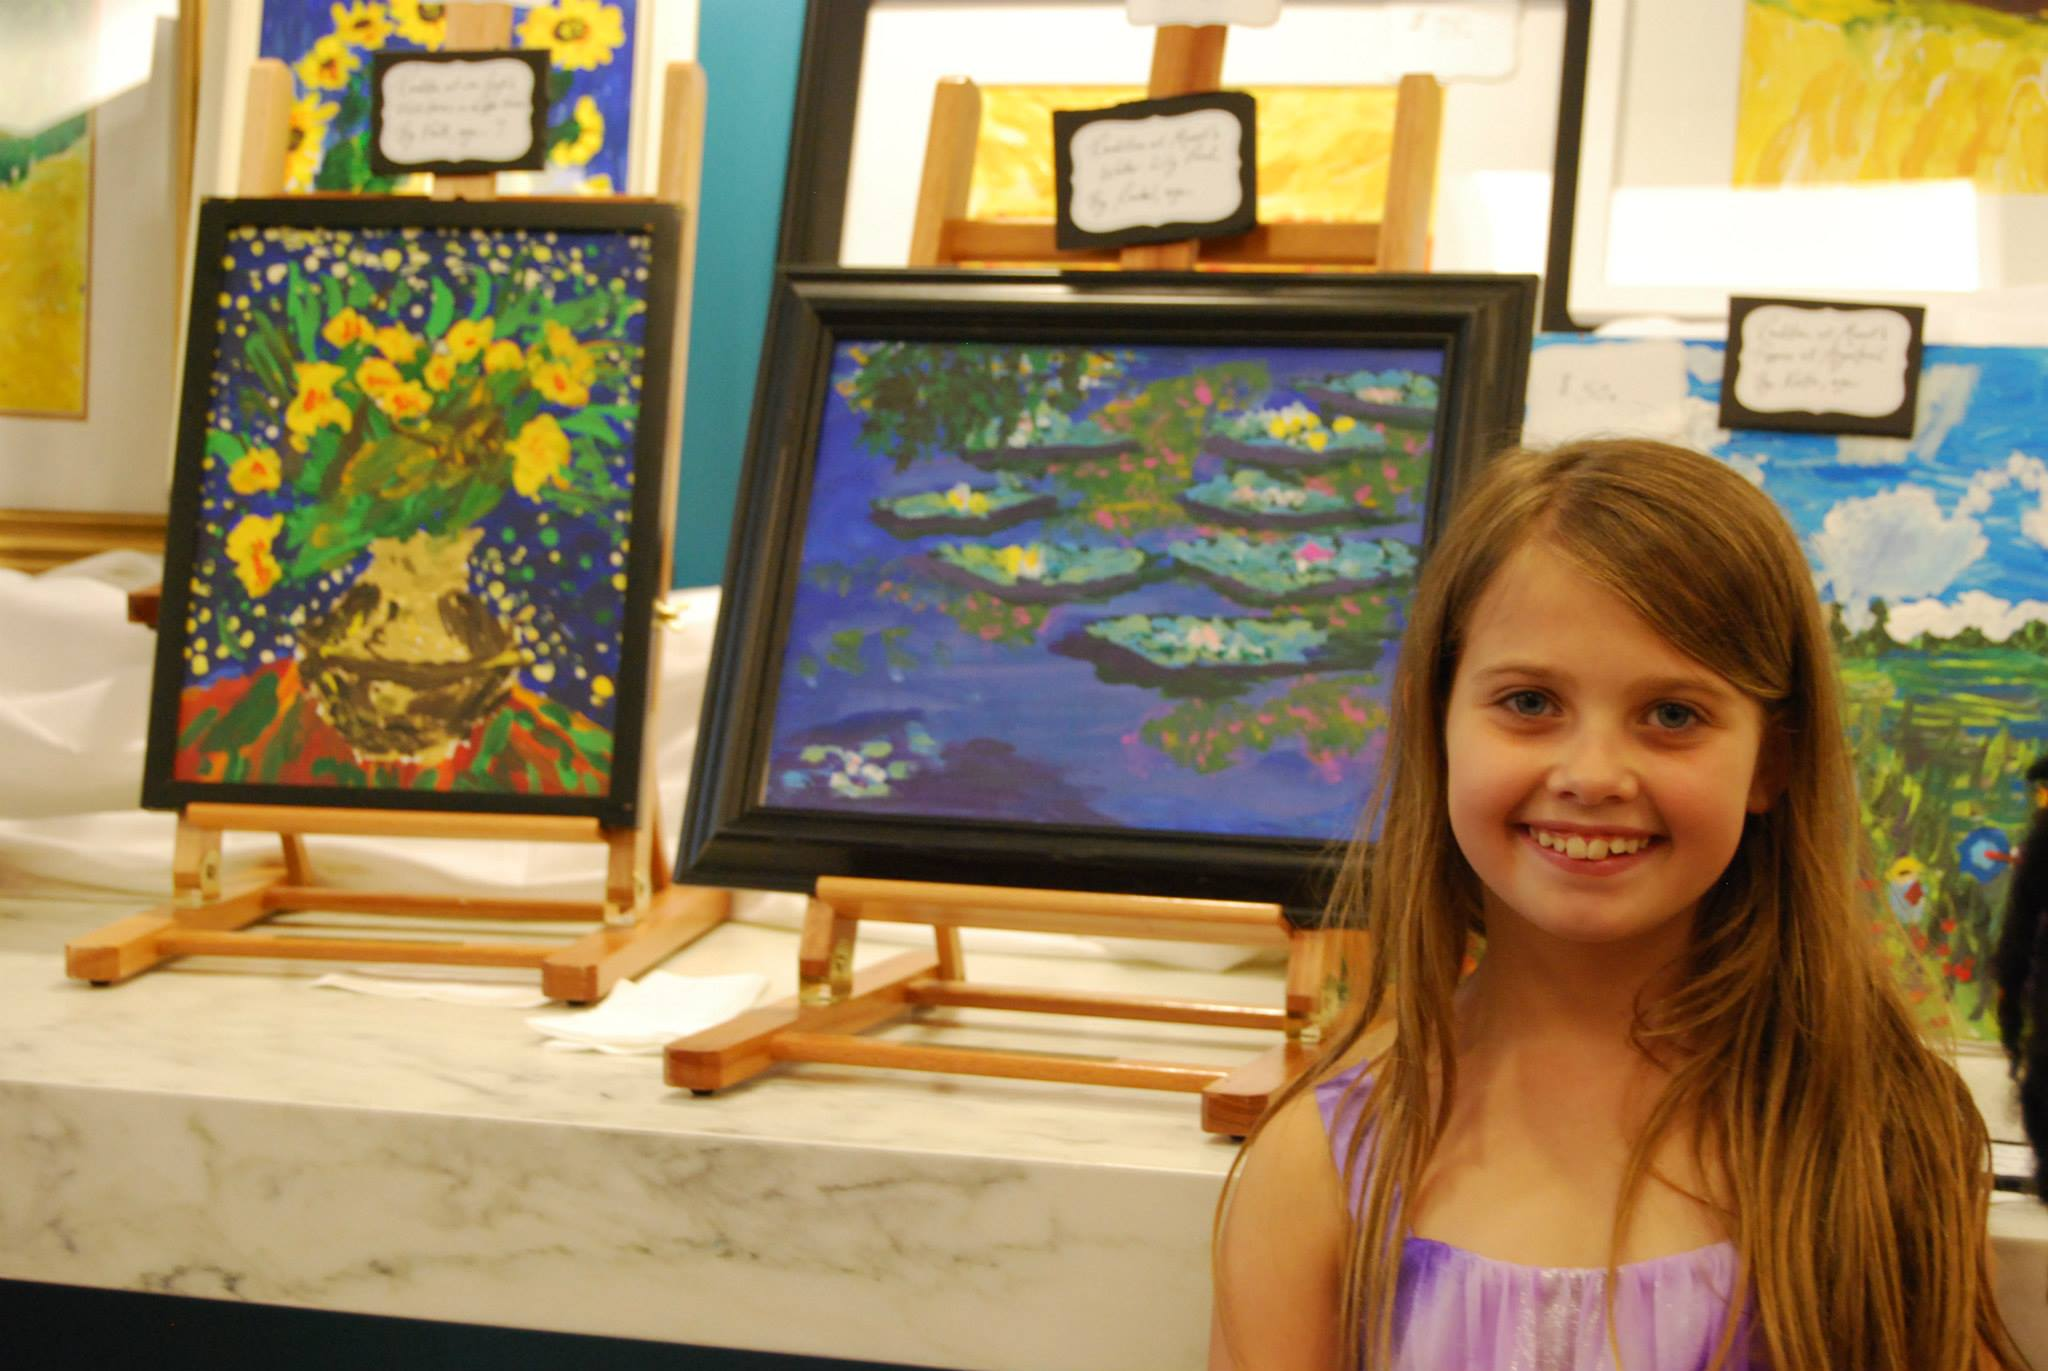 Rachel enjoys seeing her masterpieces displayed at the United Nations building!  She felt honored to help other children